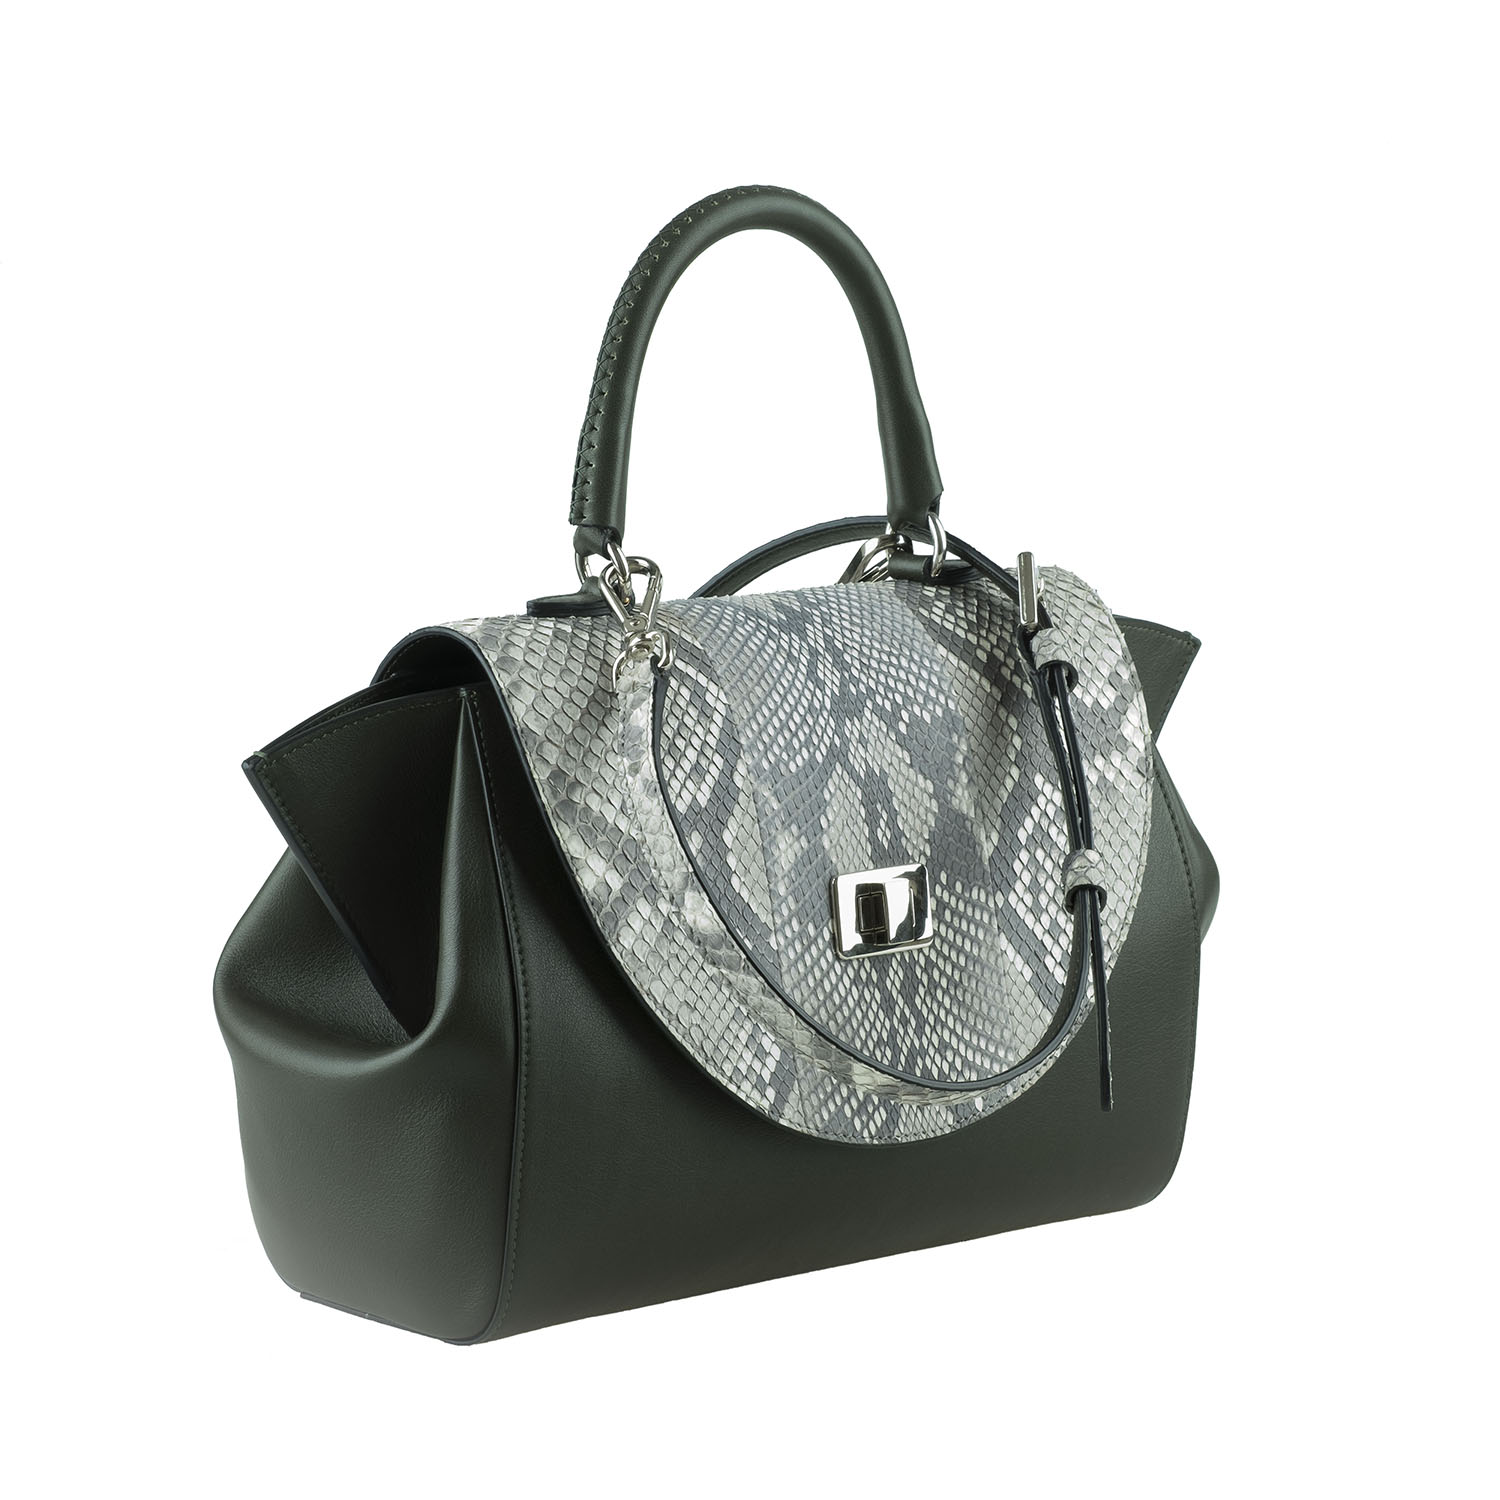 Agata Bag, Niccoli Bags